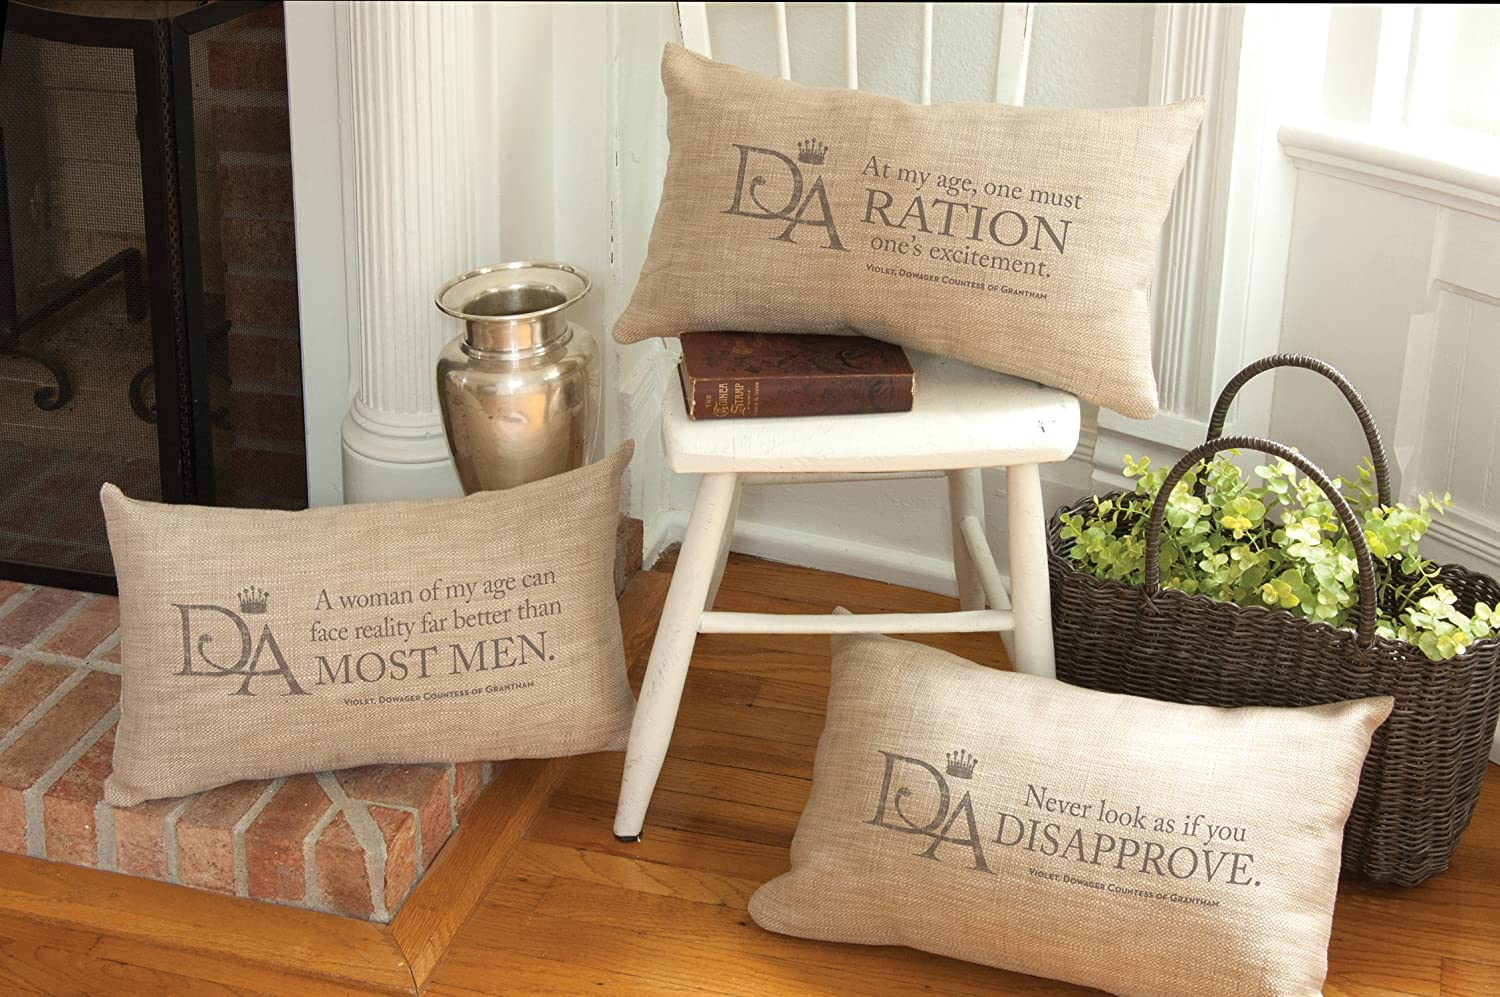 Heritage Lace VW1220NA-2 Violets Wisdom Pillow 12 by 20 Natural